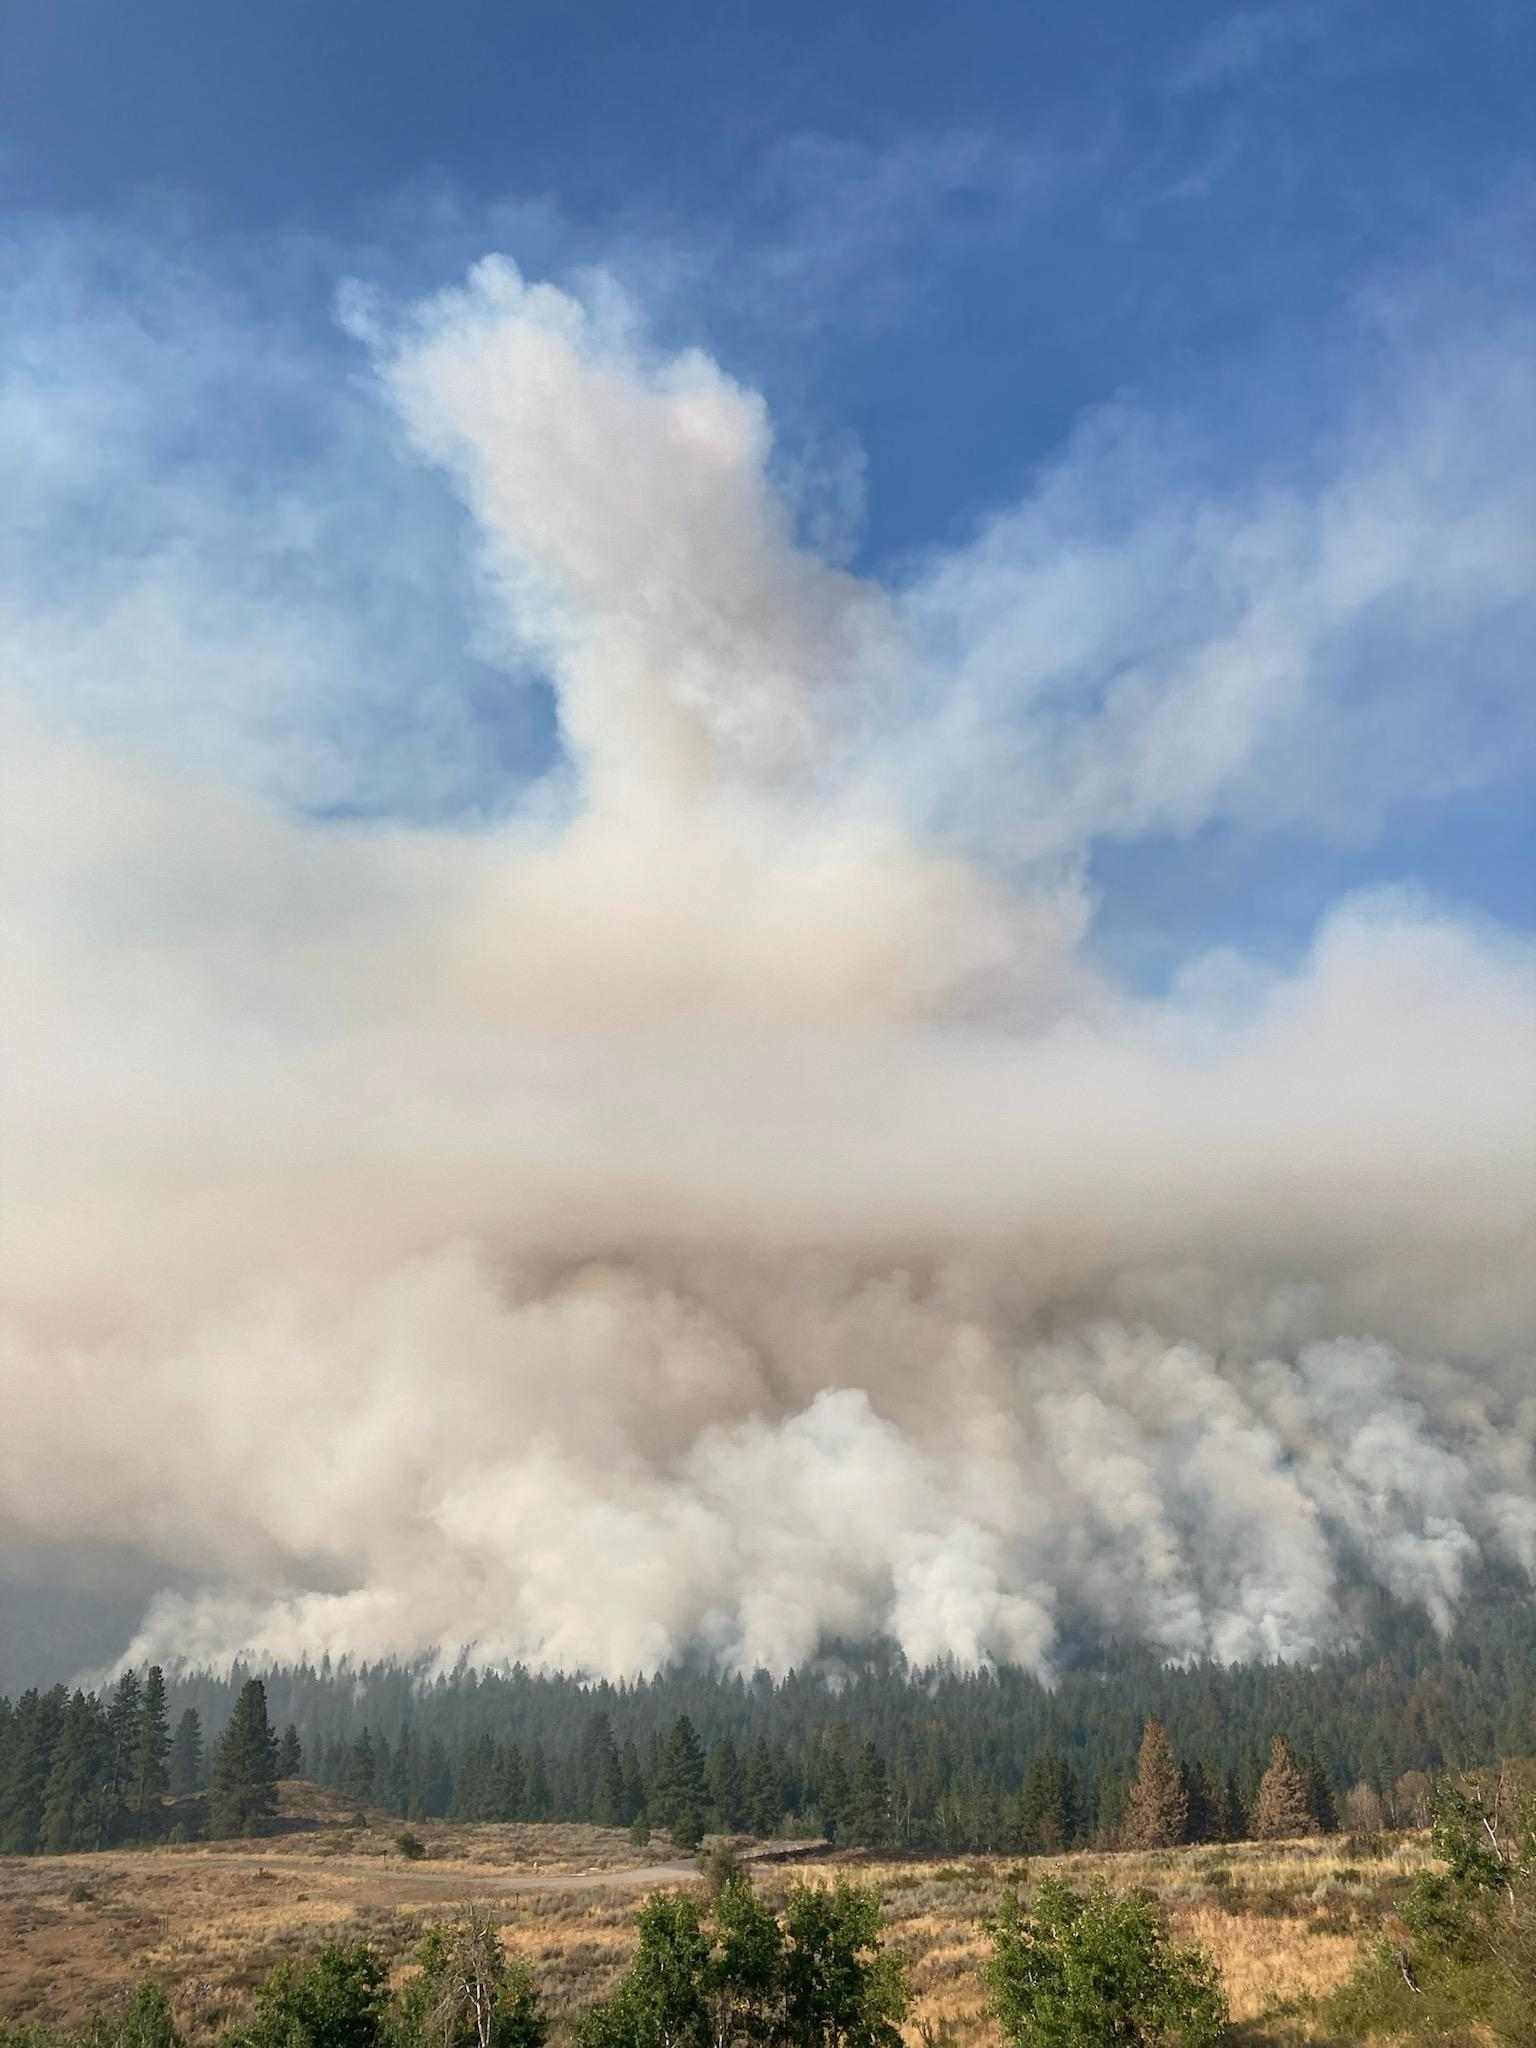 Our hotshot crew just finished hand ignition along the Thompson Ridge below Gobblers Knob, from the 4410 road across the 500 road. This is to create a black line more slowly. Crews and engines are deployed along the 4410 road to hold the fire.